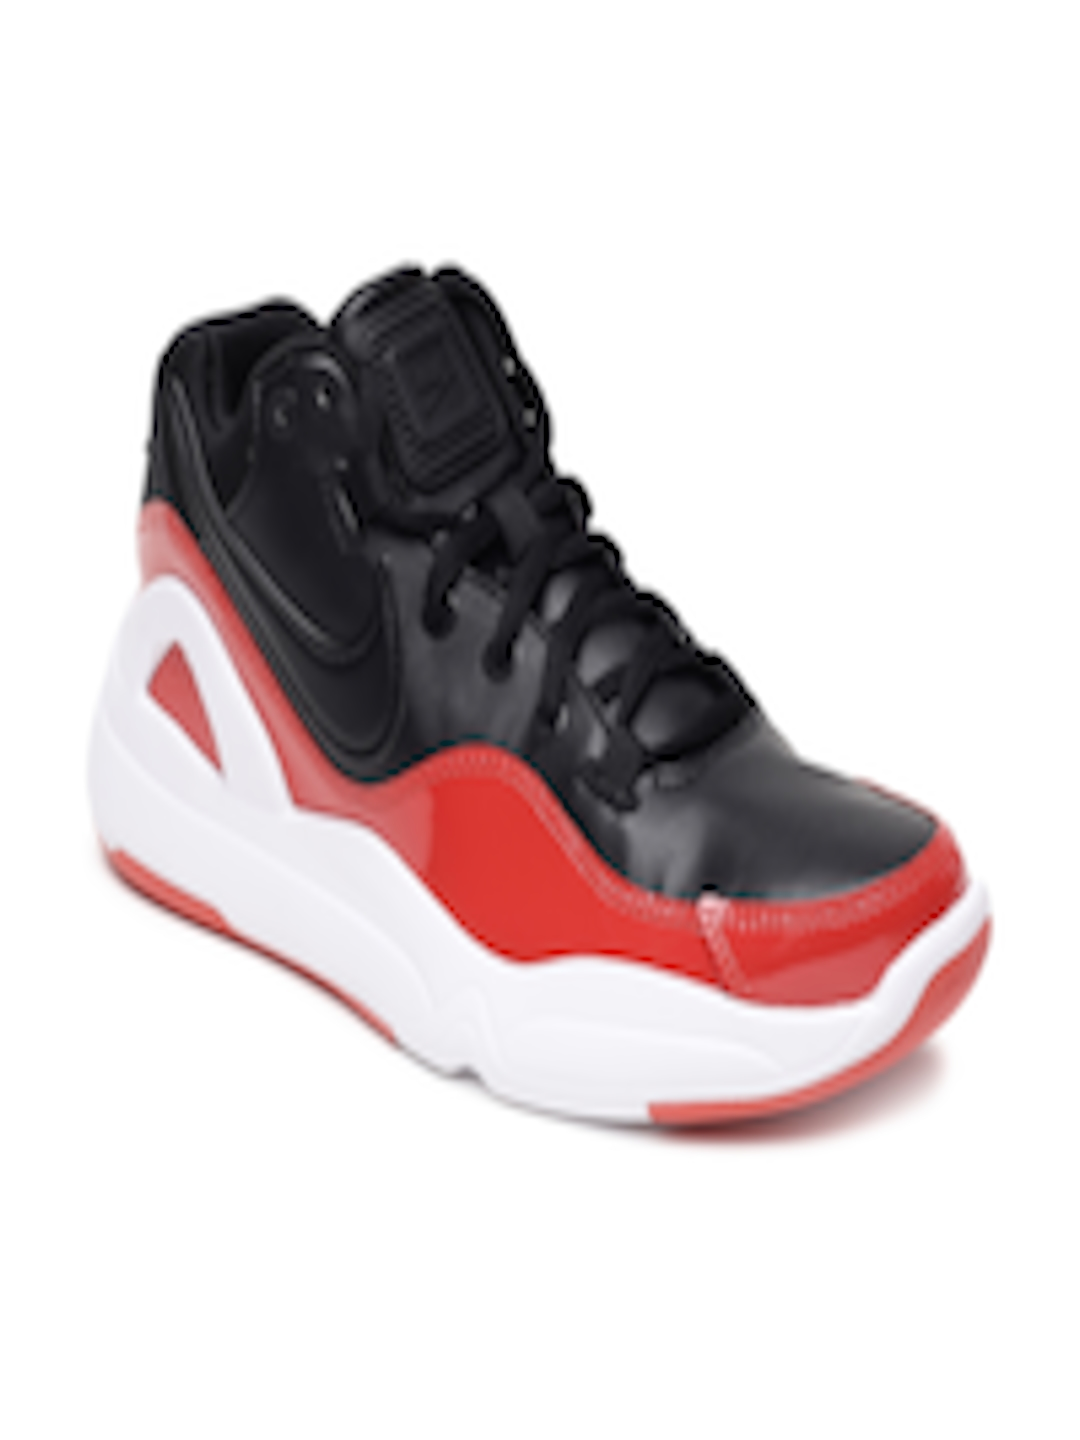 8338f328ff378 Buy Nike Men Black   Red NIKE DILATTA PREMIUM Basketball Shoes - Sports  Shoes for Men 7487747